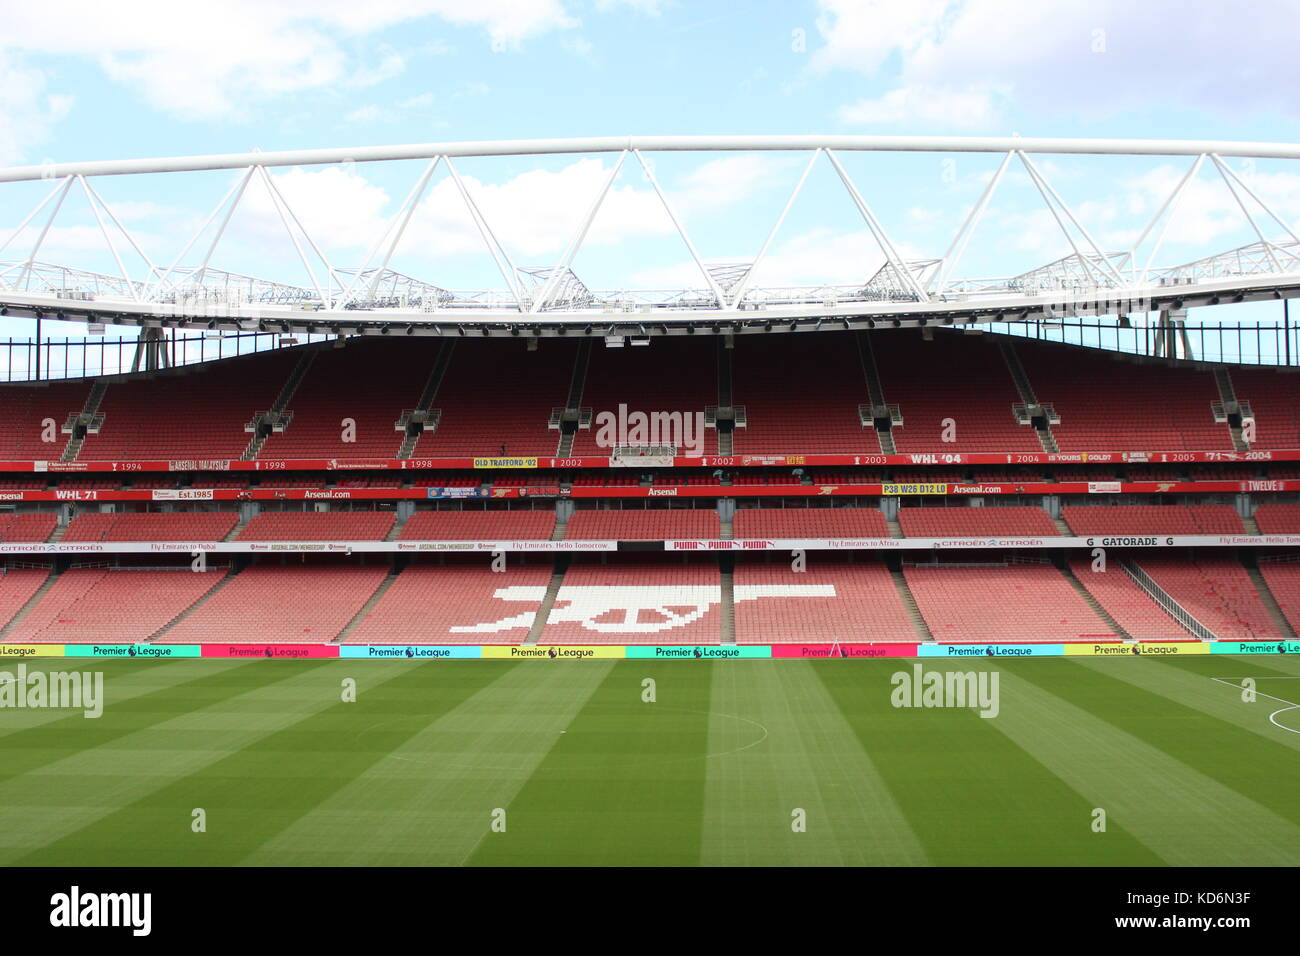 Emirates Stadium, London during August 2016, shortly before Arsenal's opening 16/17 league game - Stock Image